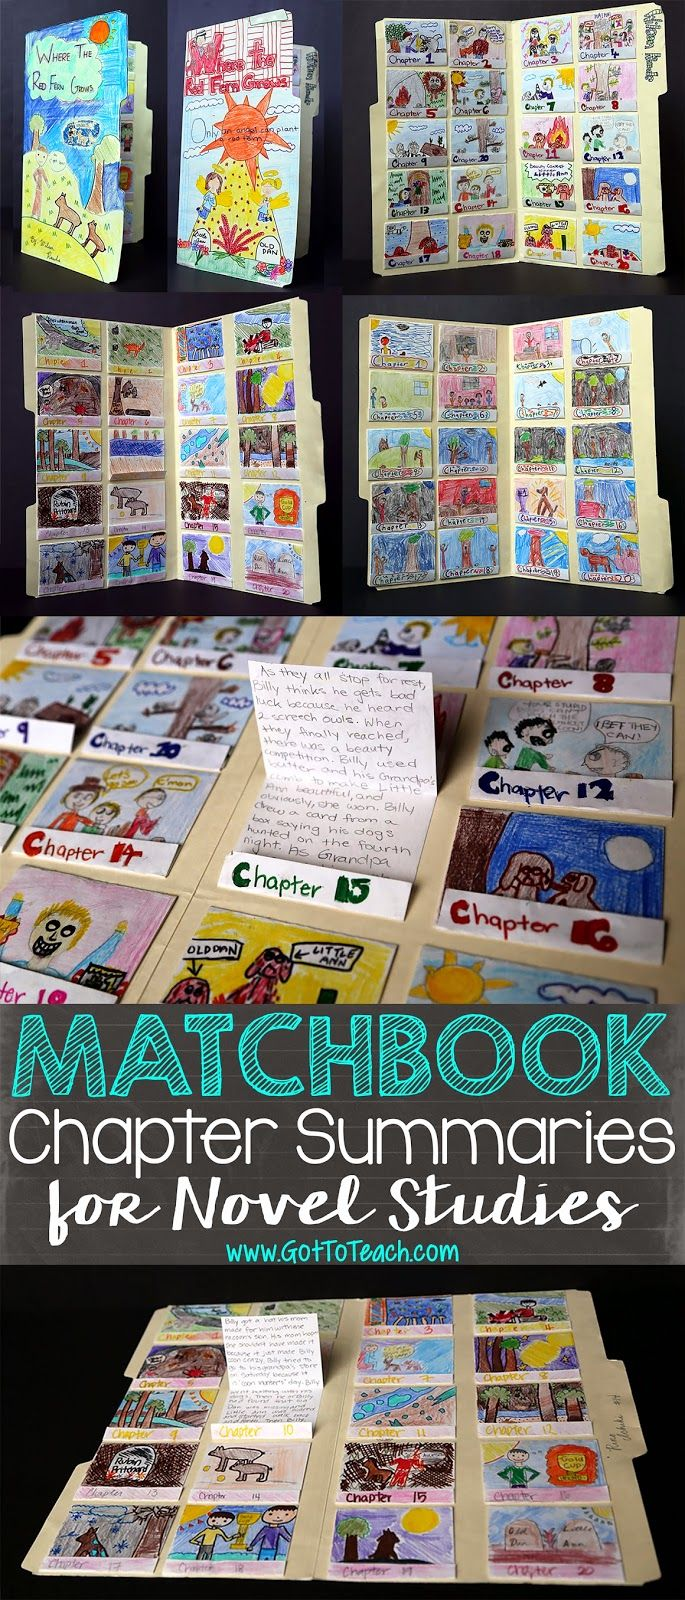 Matchbook Chapter Summaries for Novel Studies